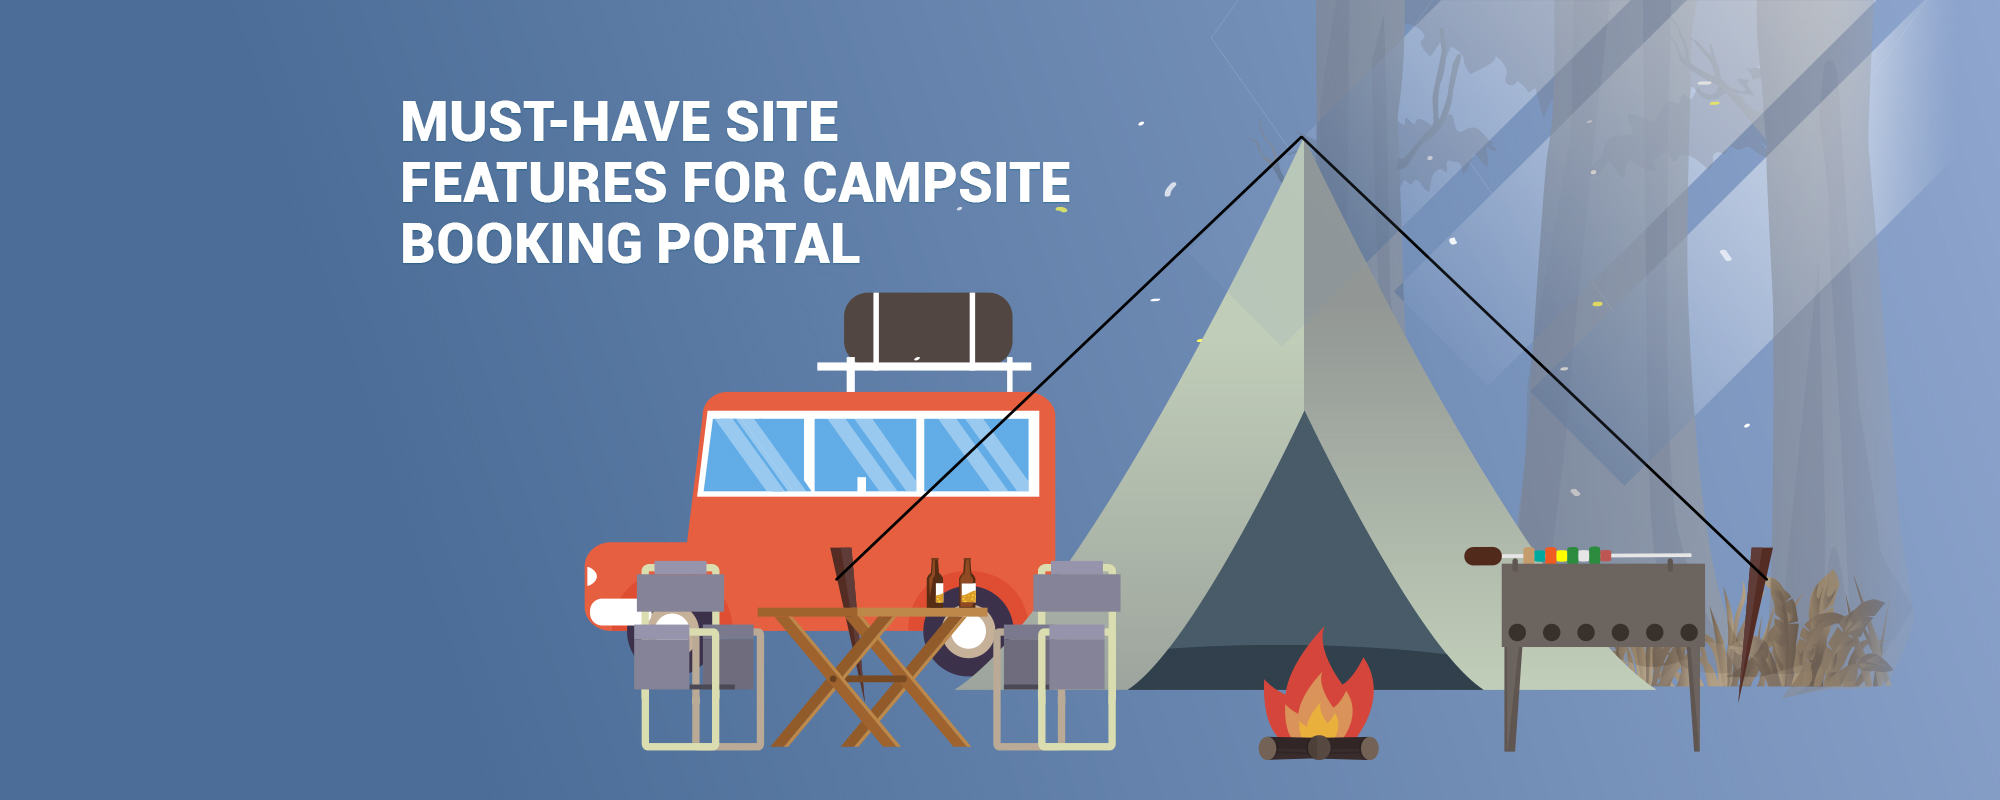 Build Platform to Rent Campsites and Open Spaces – Check Website Features and Business Model